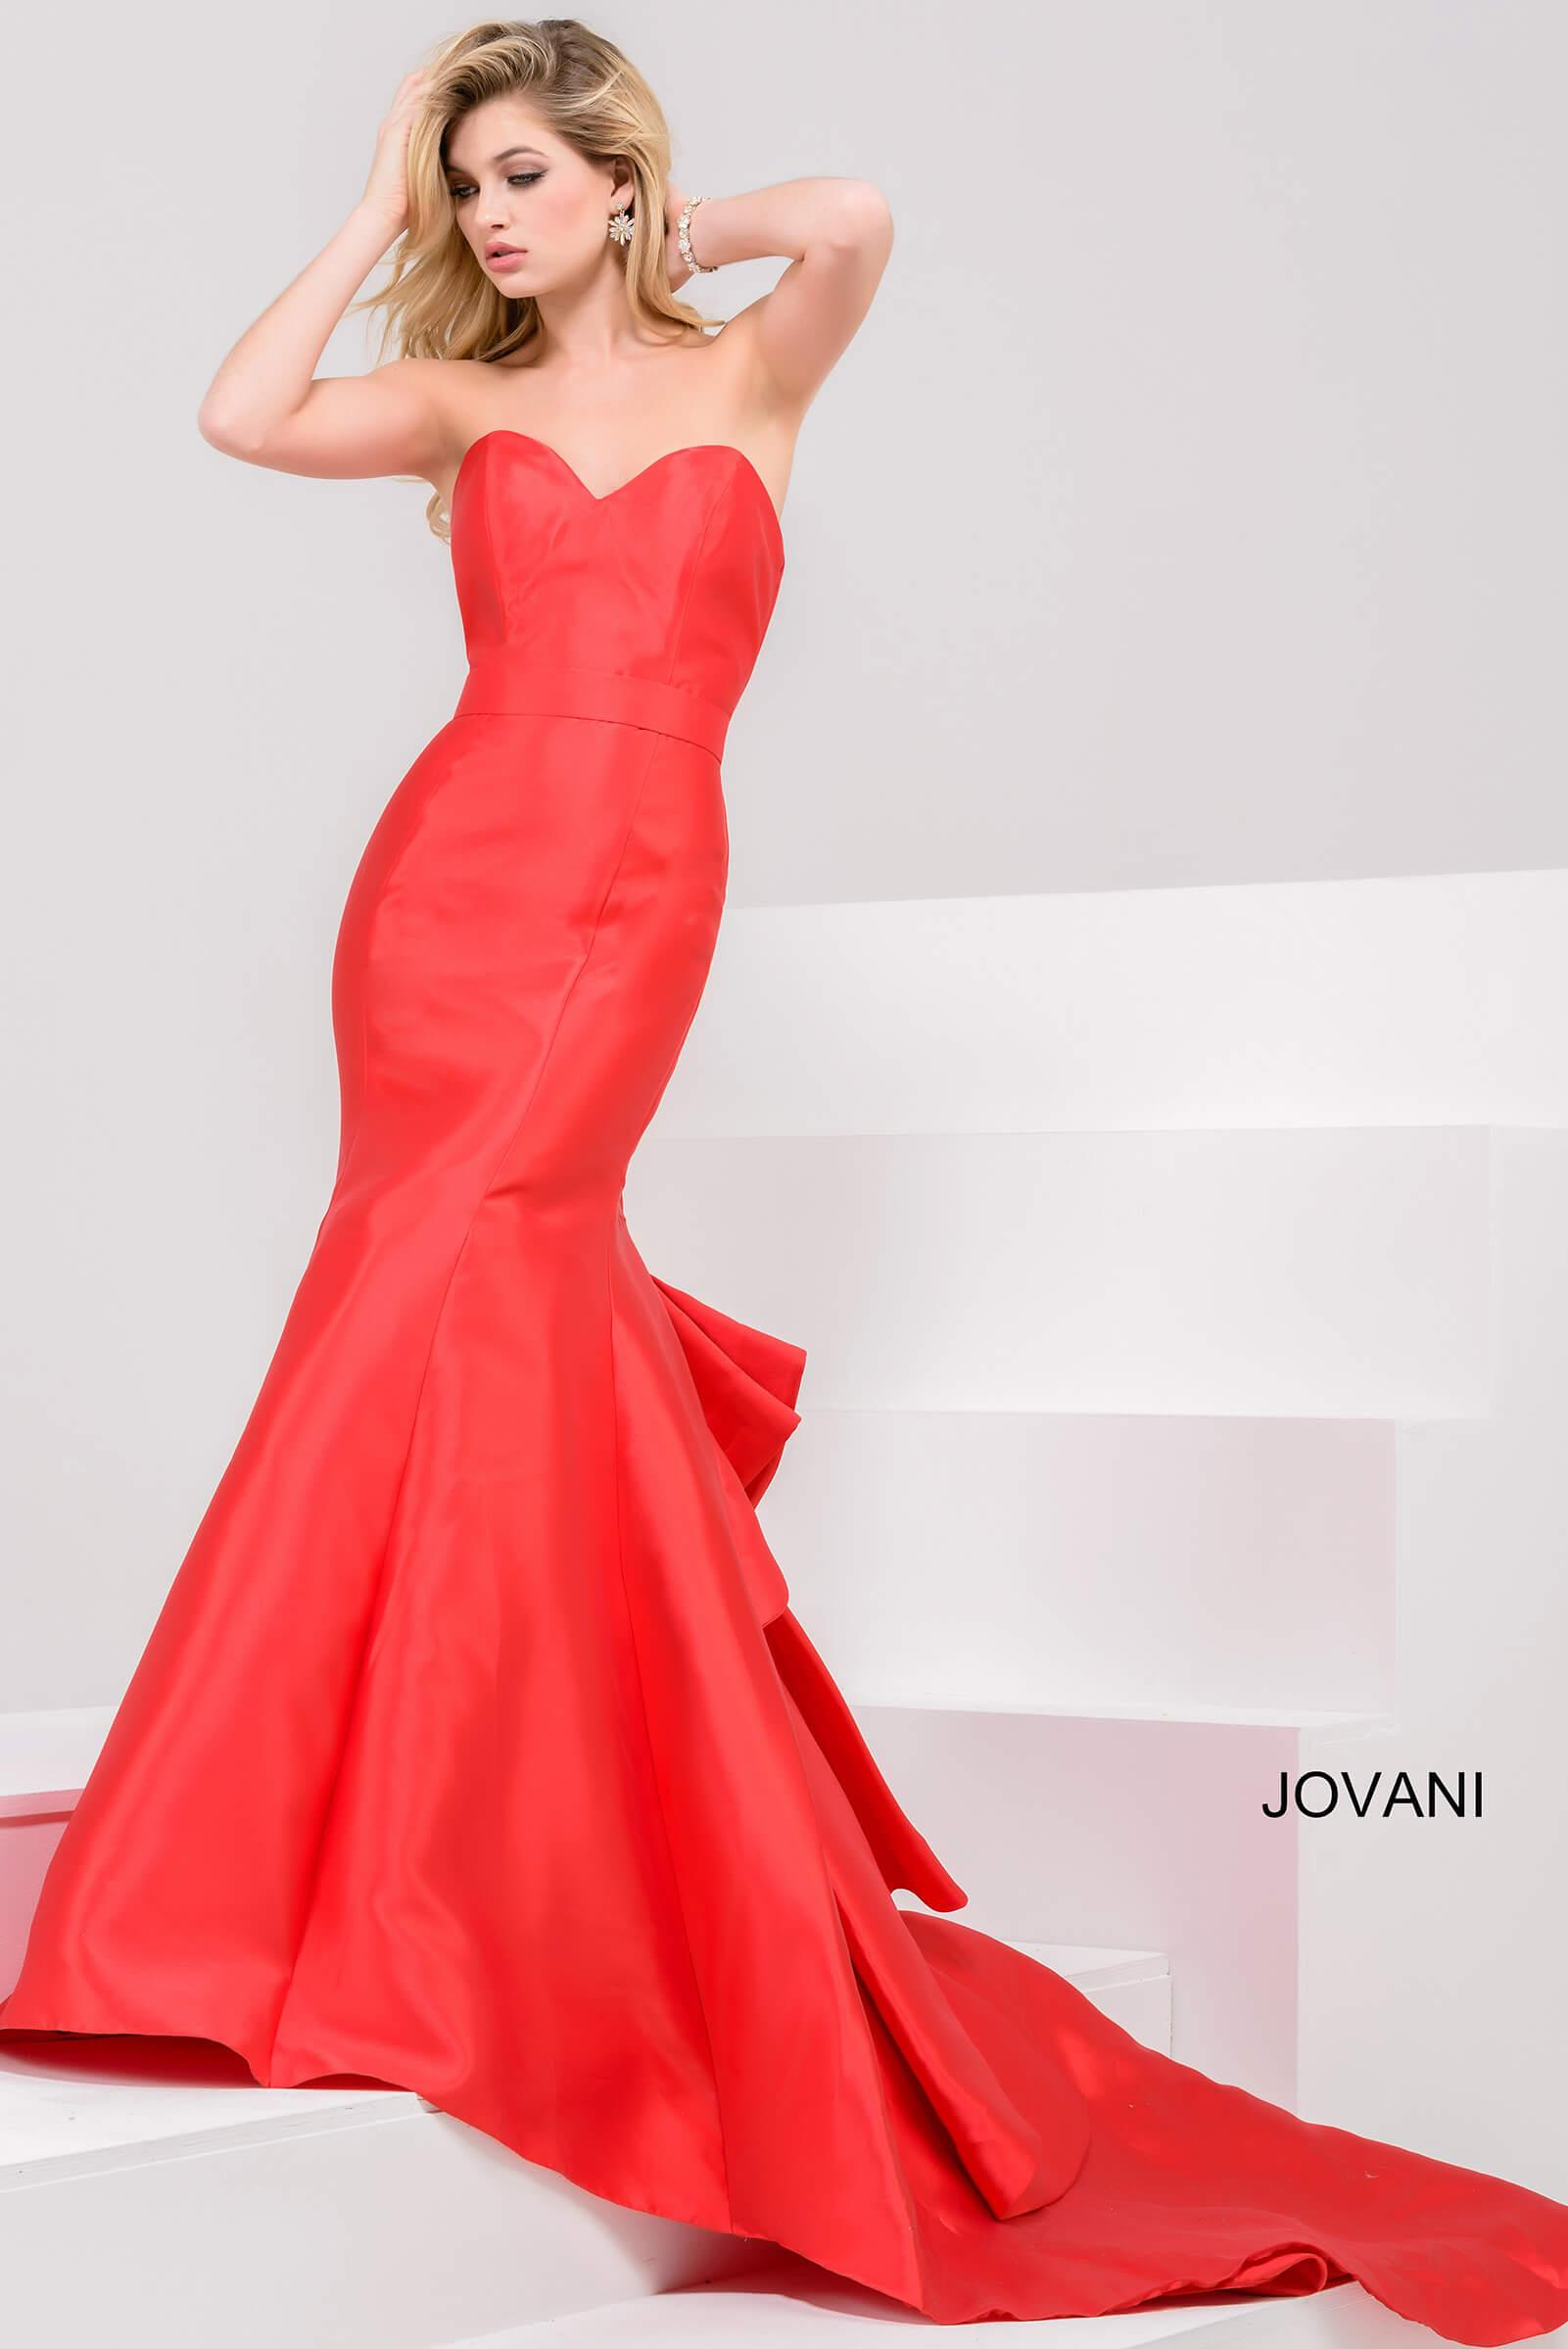 6f50fea7c6d7 Jovani Red Strapless Sweetheart Neck Mermaid Gown | ModeSens